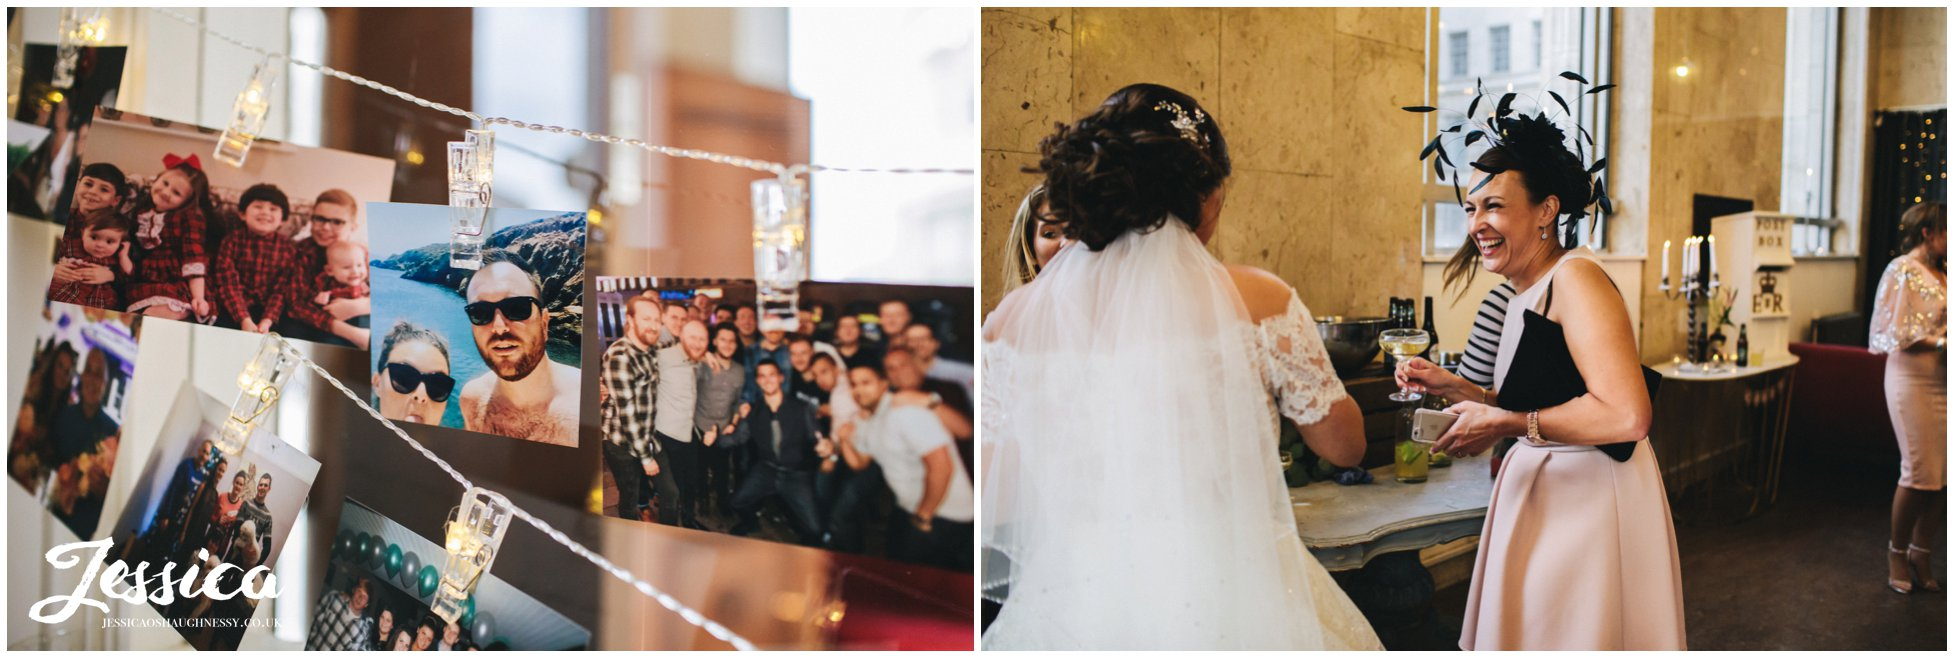 photos of the newly wed's decorate liverpool wedding venue, oh me oh my